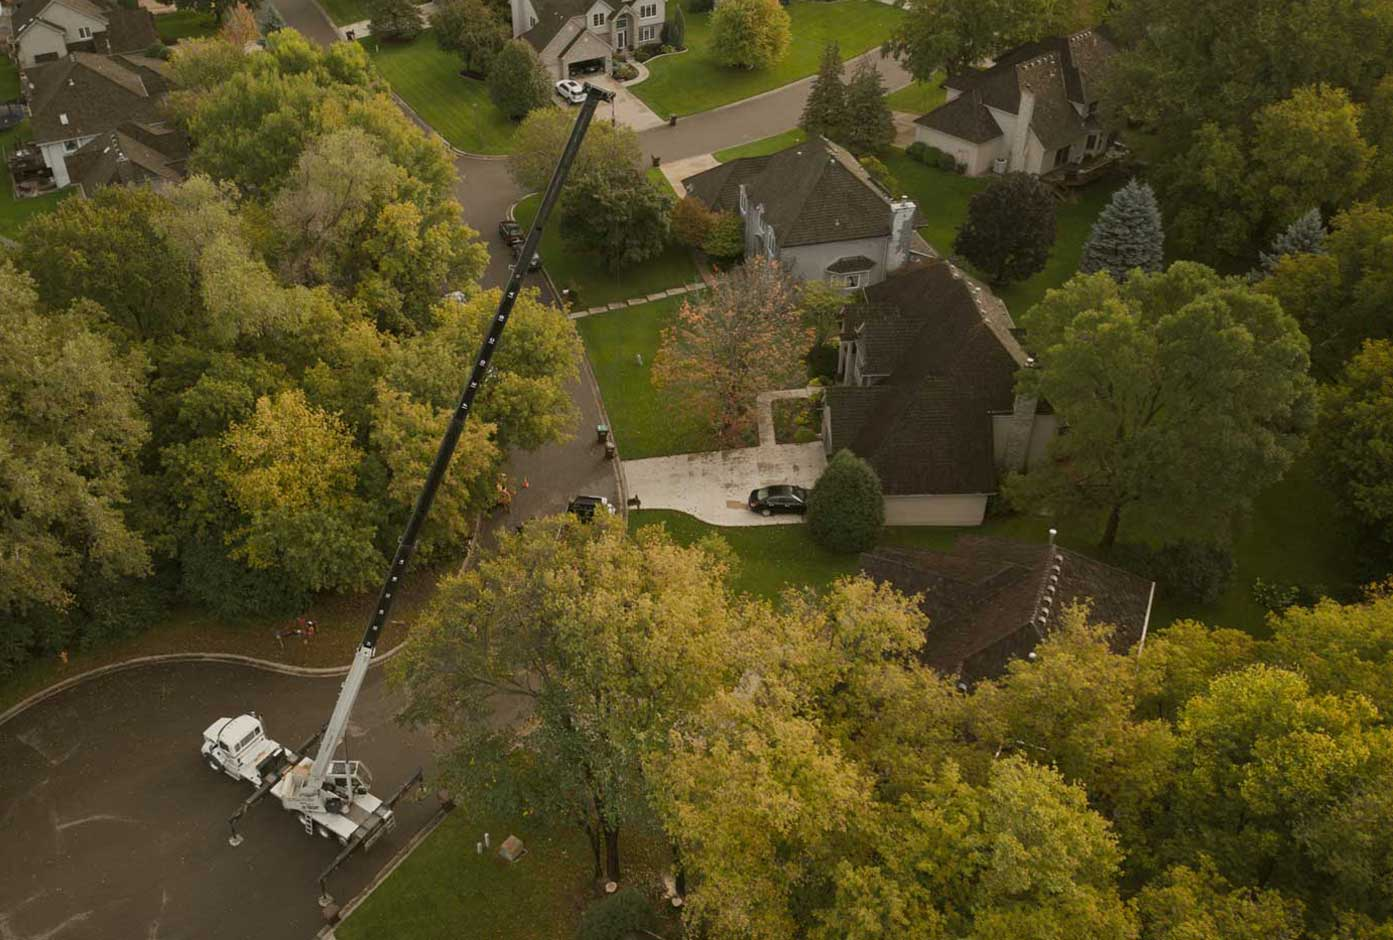 crane services in the minnesota area